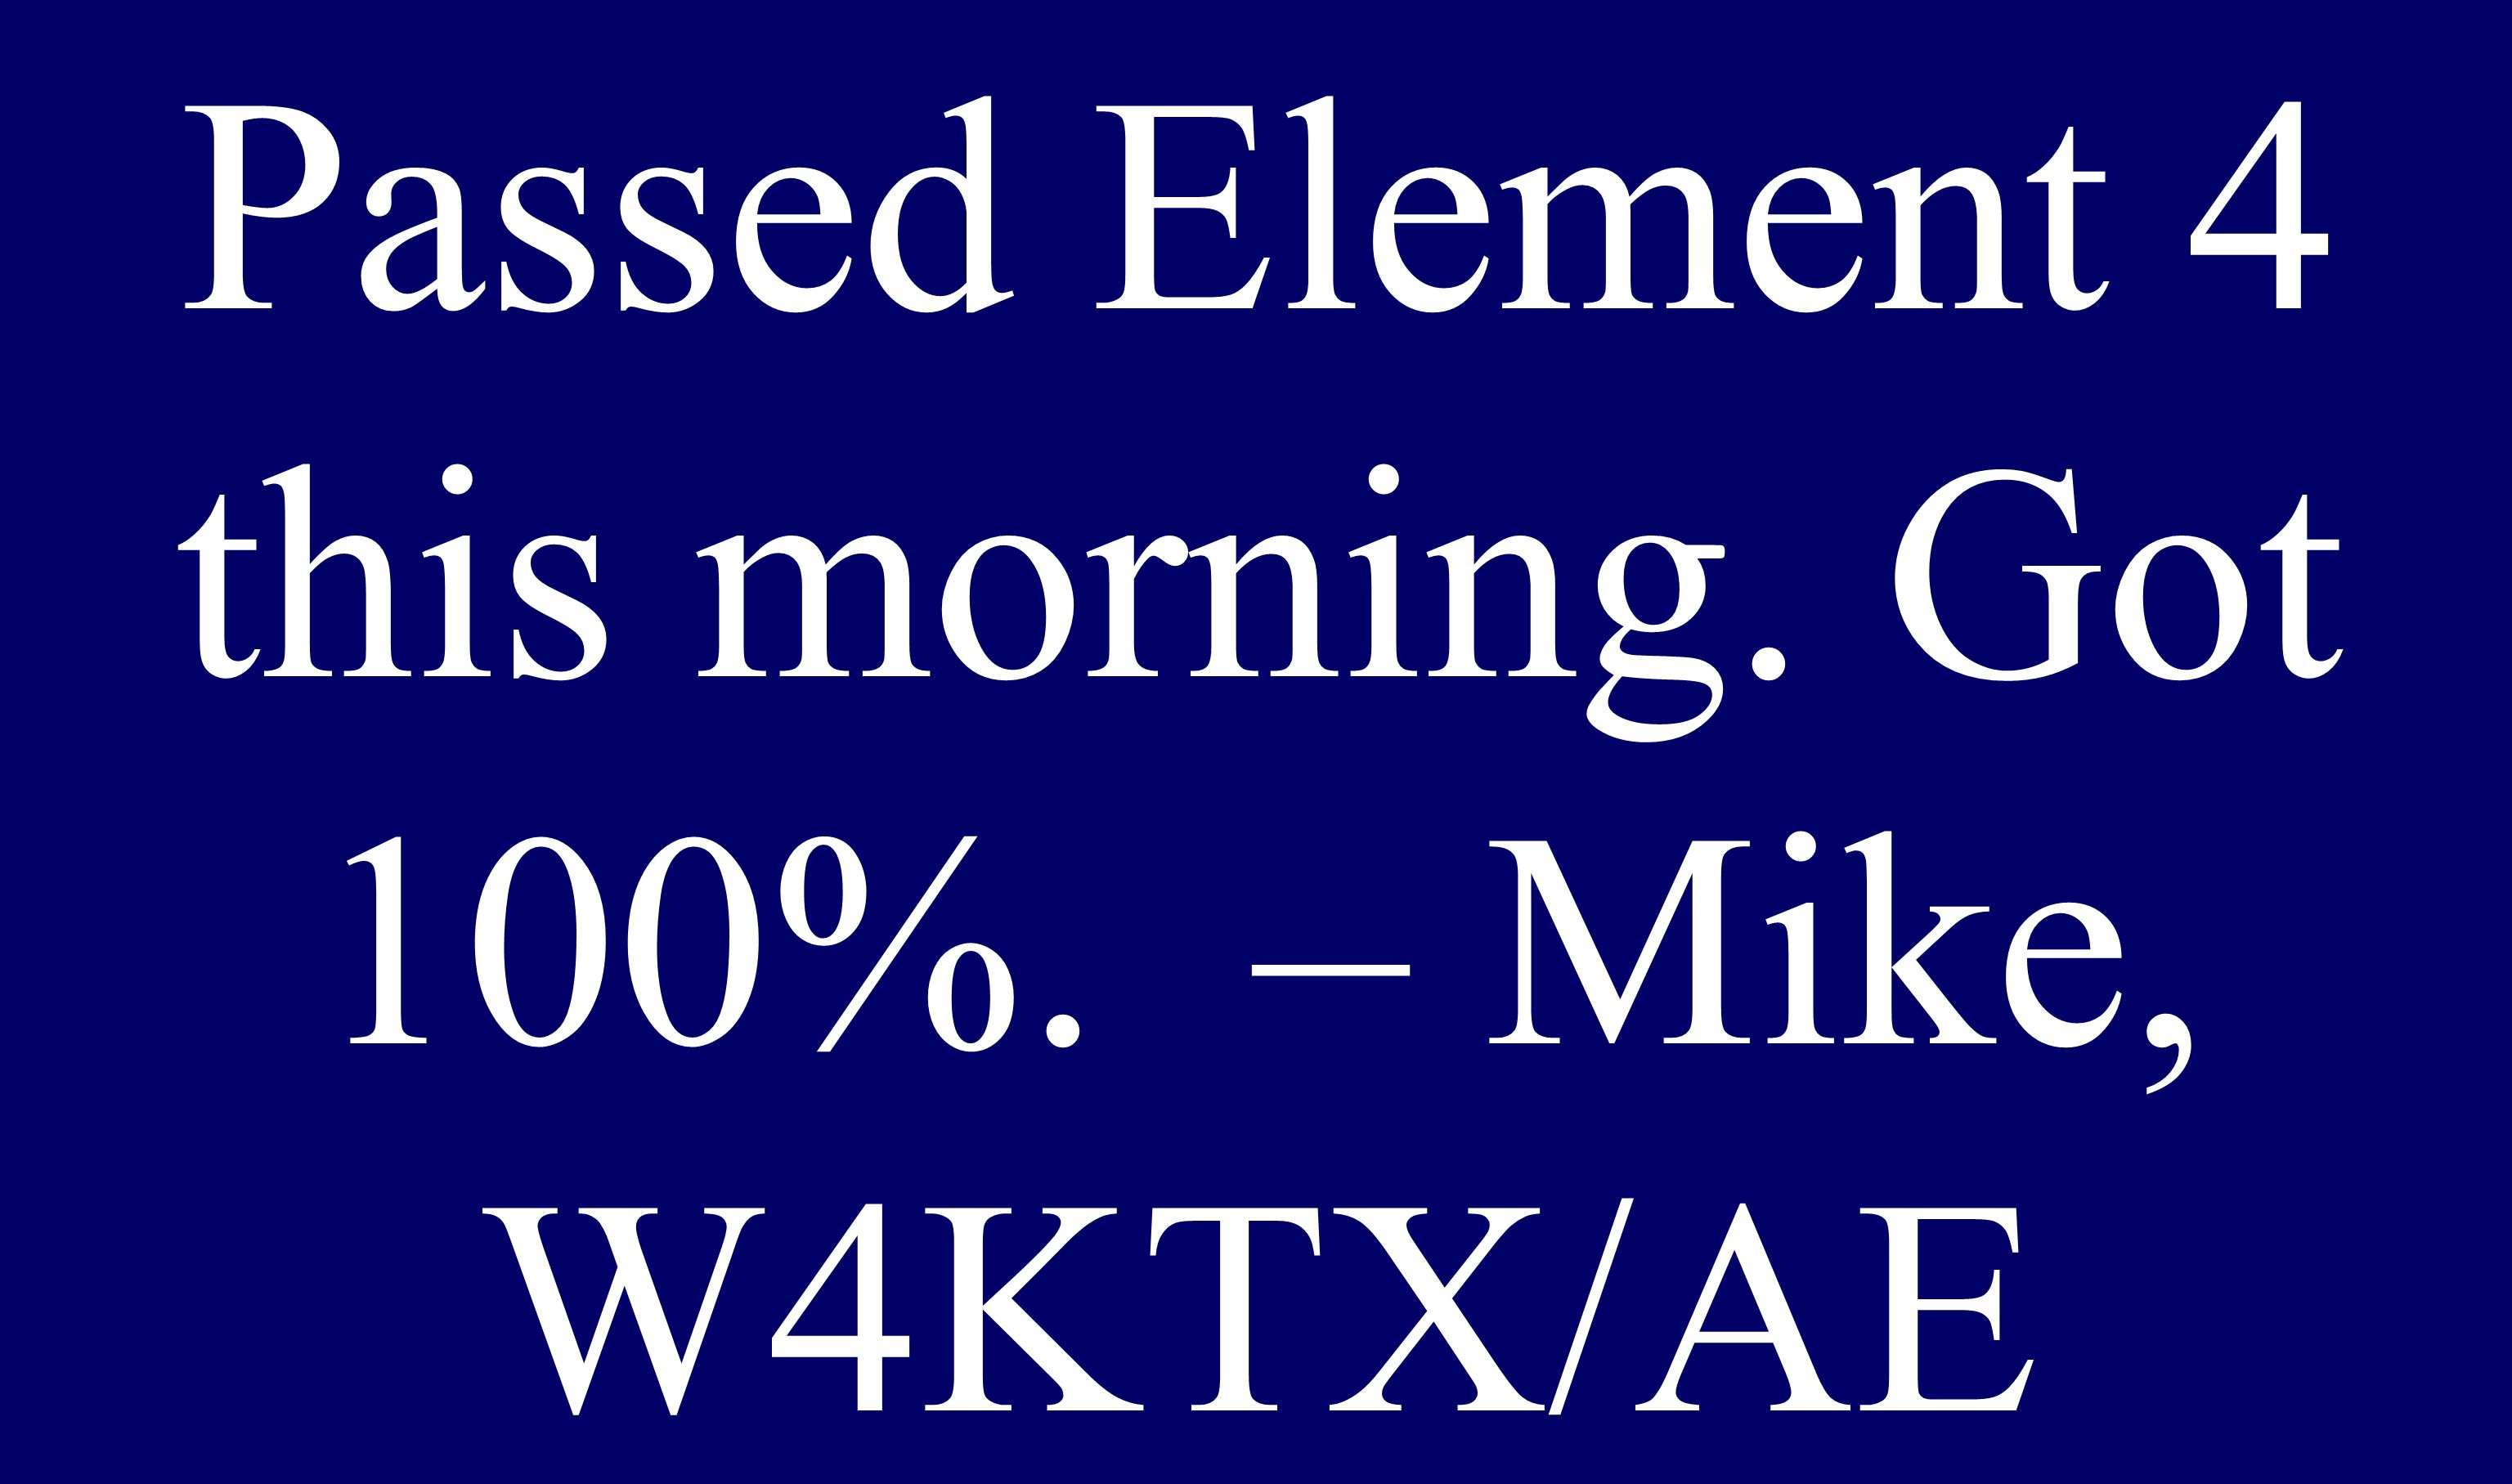 Passed Element 4 this morning. Got 100%. – Mike, W4KTX/AE